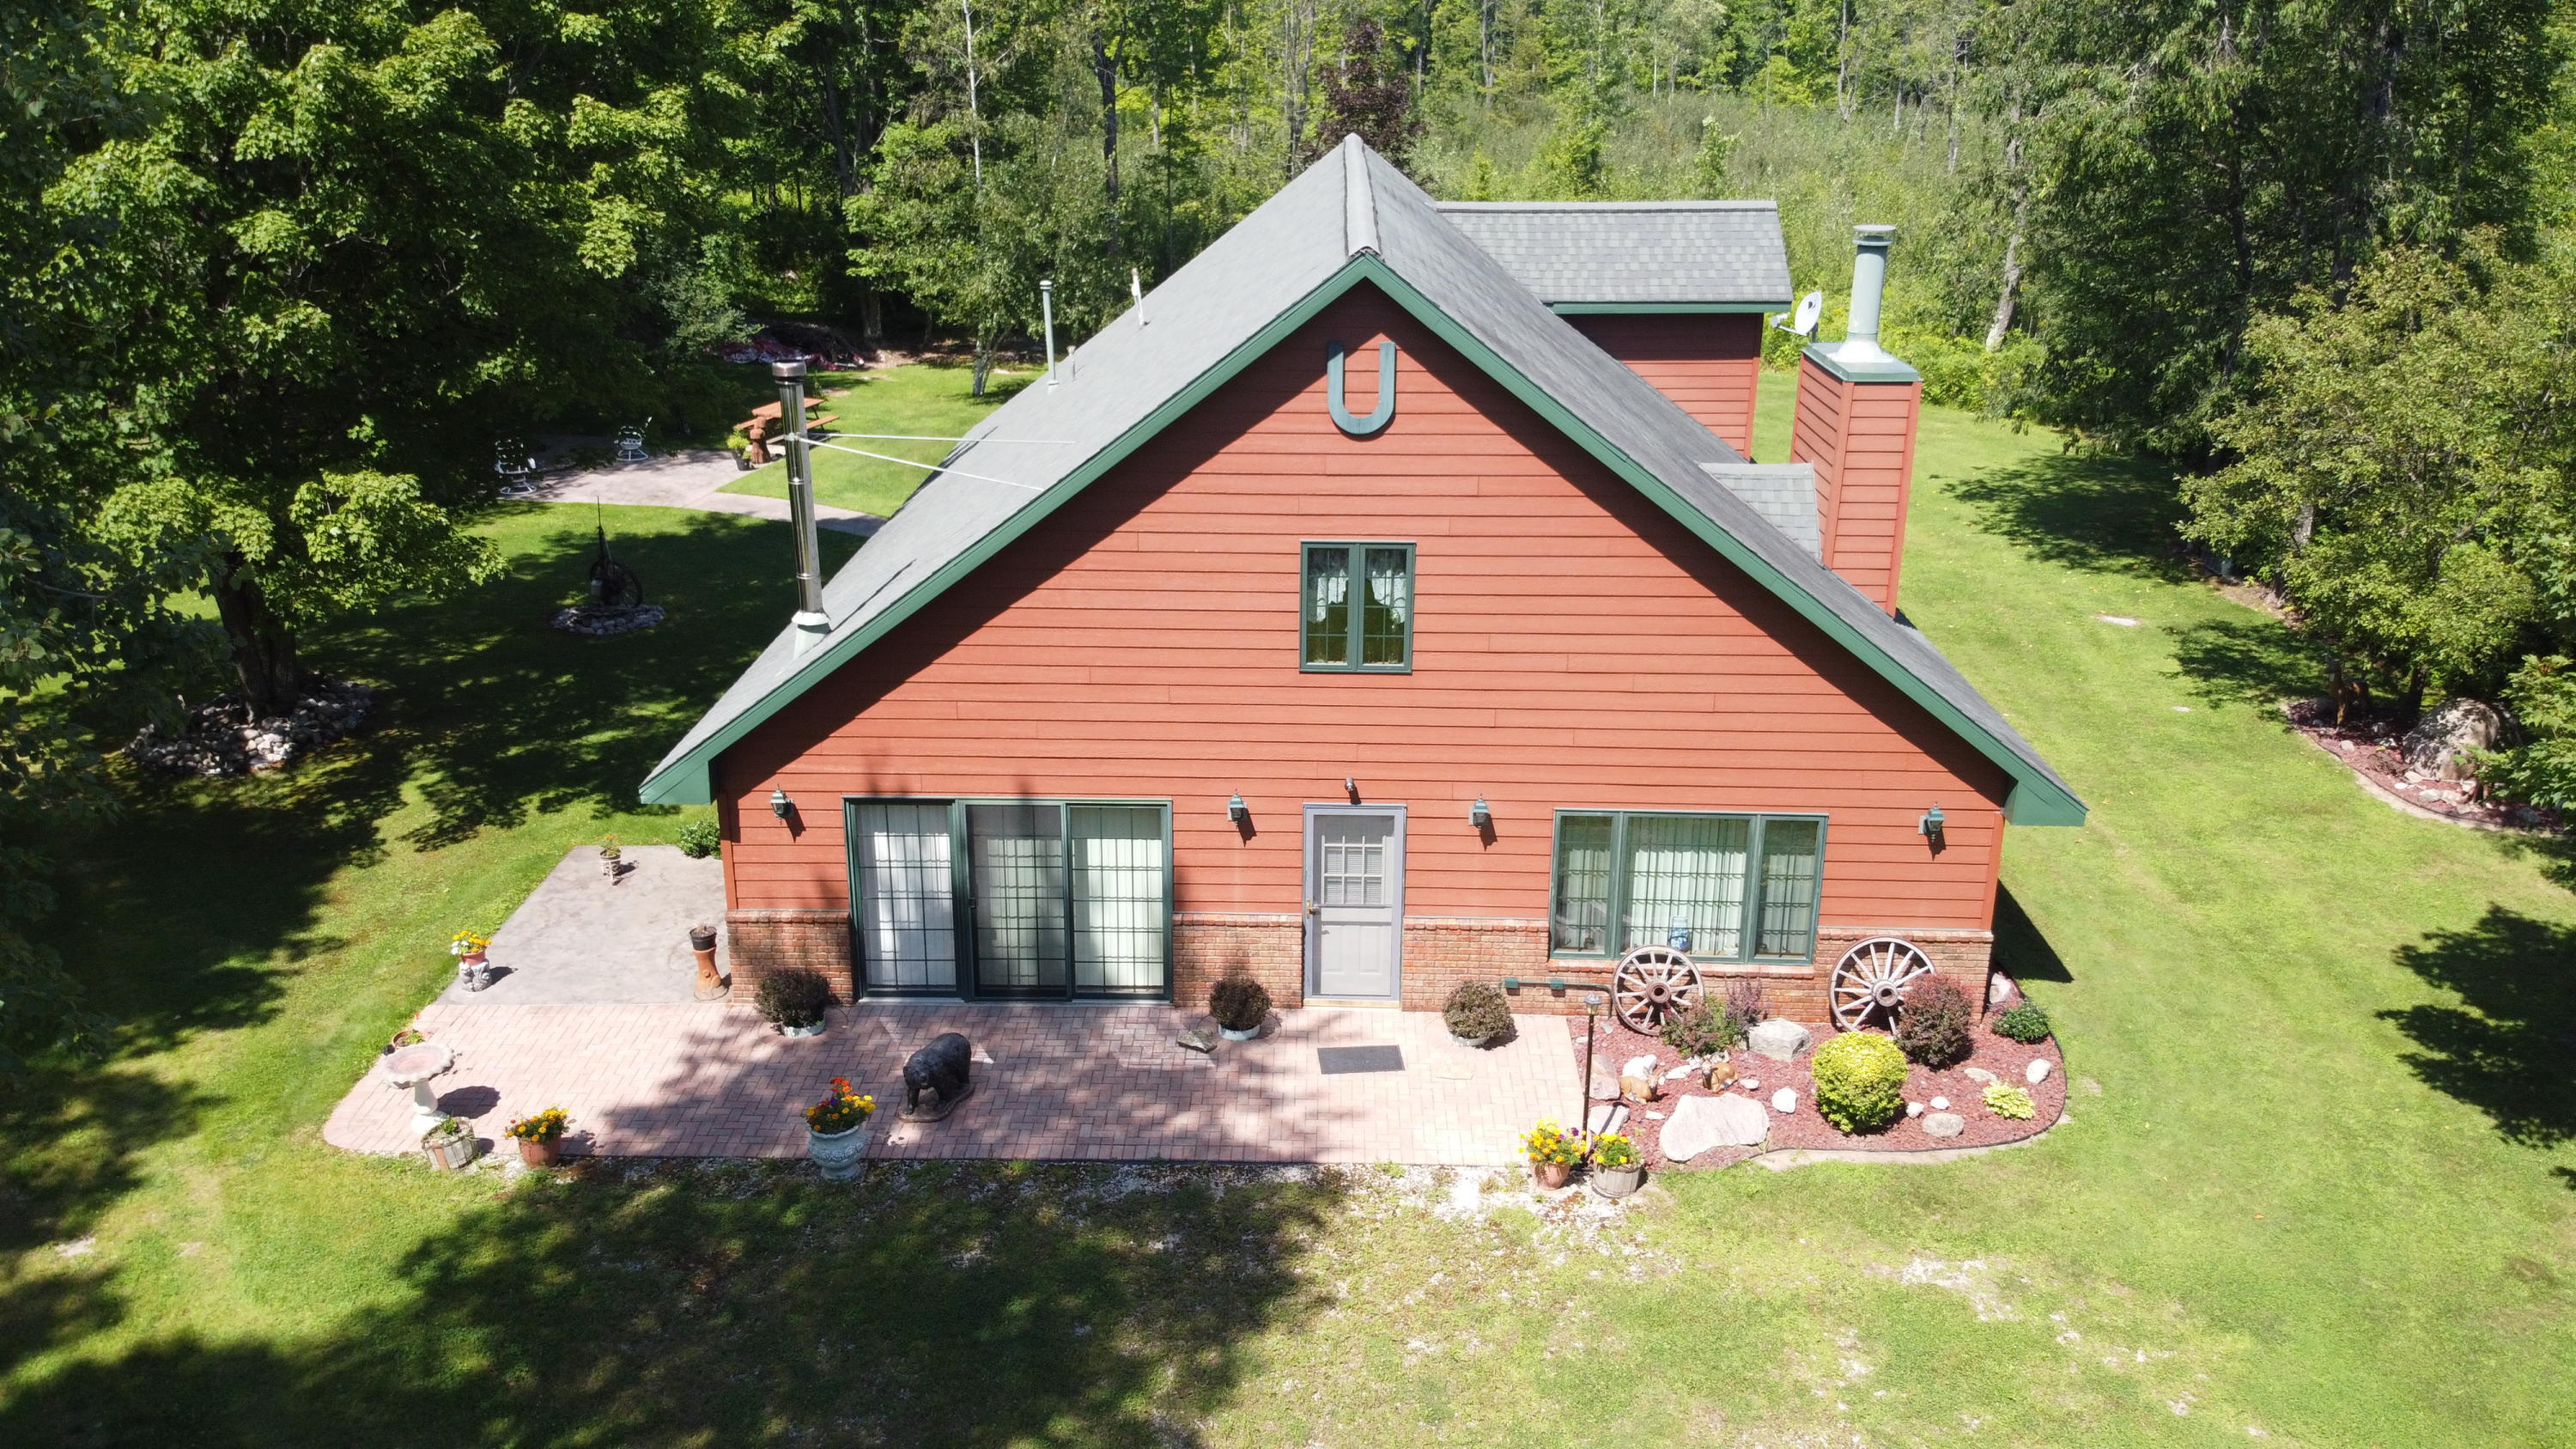 W16391 County Rd. C, Silver Cliff, Wisconsin 54104, 3 Bedrooms Bedrooms, ,3 BathroomsBathrooms,Single-family,For Sale,County Rd. C,1705713